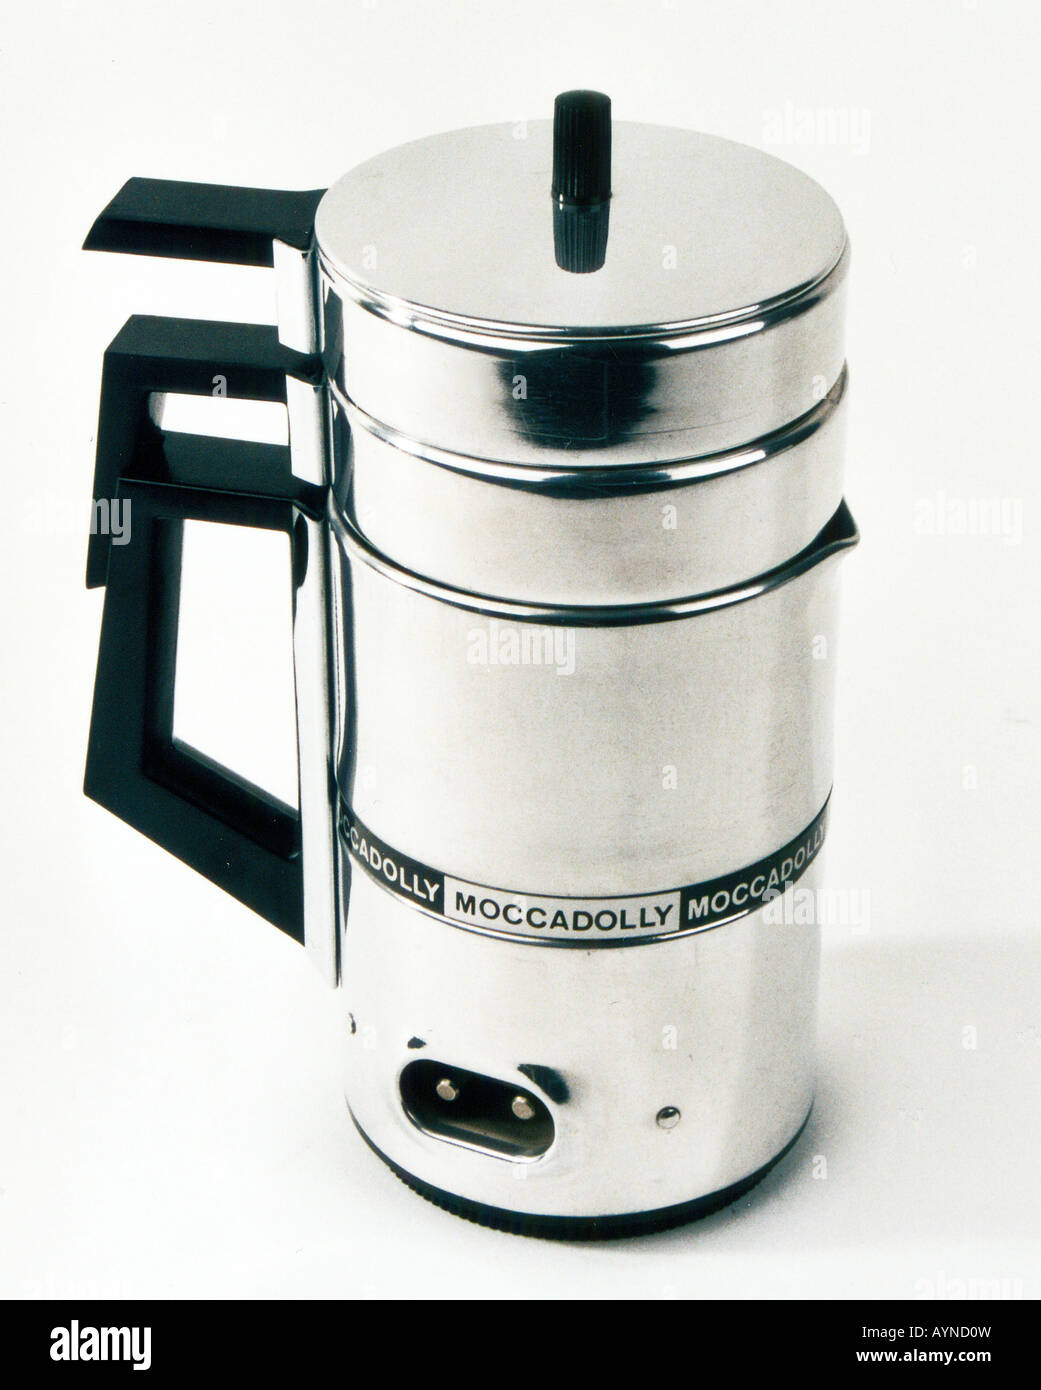 household, kitchen and kitchenware, electric coffee maker MOCCADOLLY ...